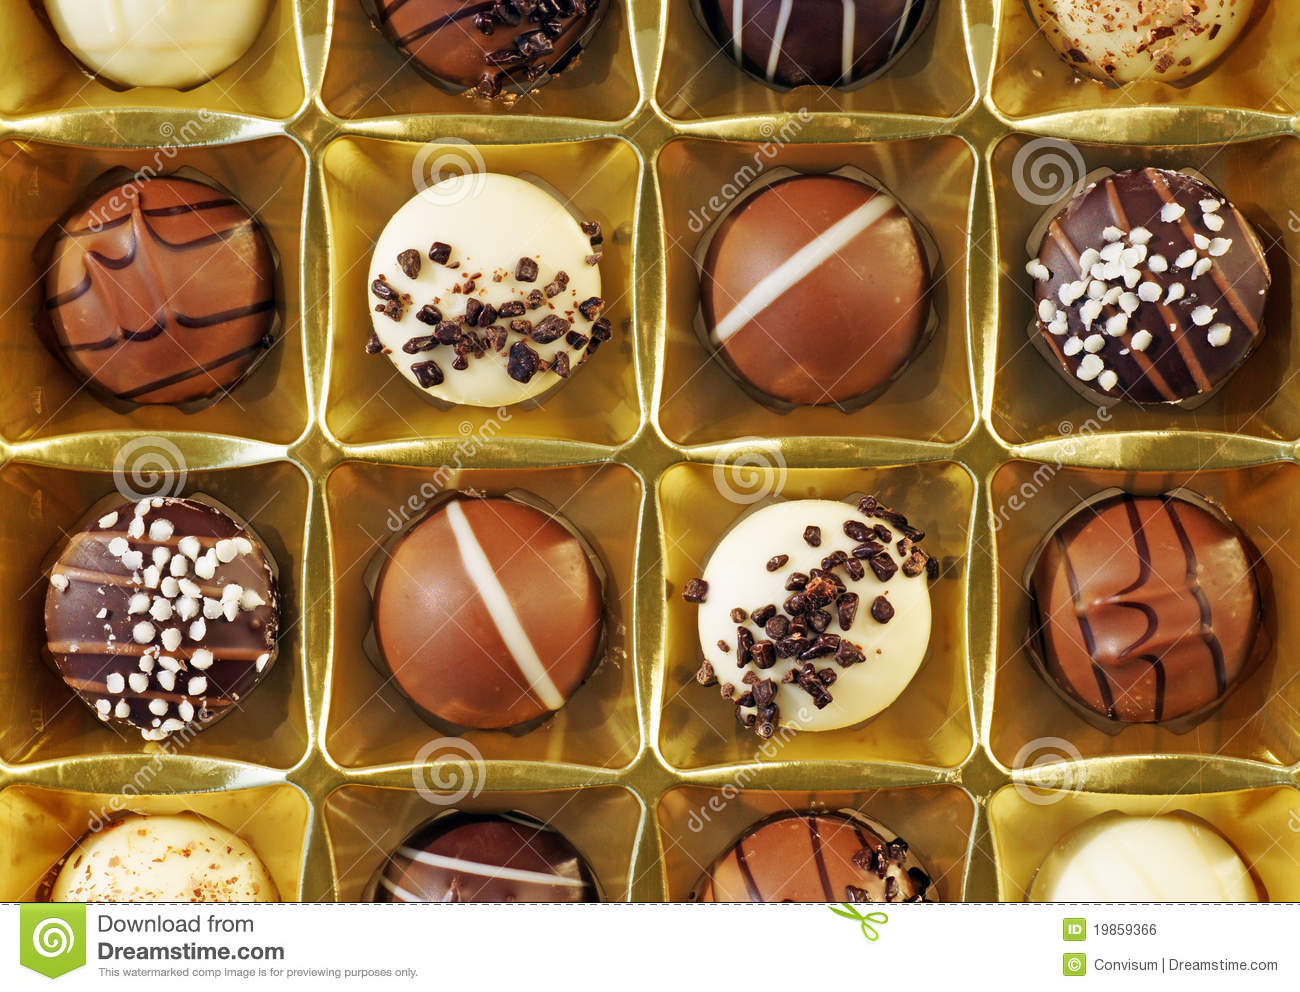 Gourmet Chocolate Candy Royalty Free Stock Image - Image: 19859366